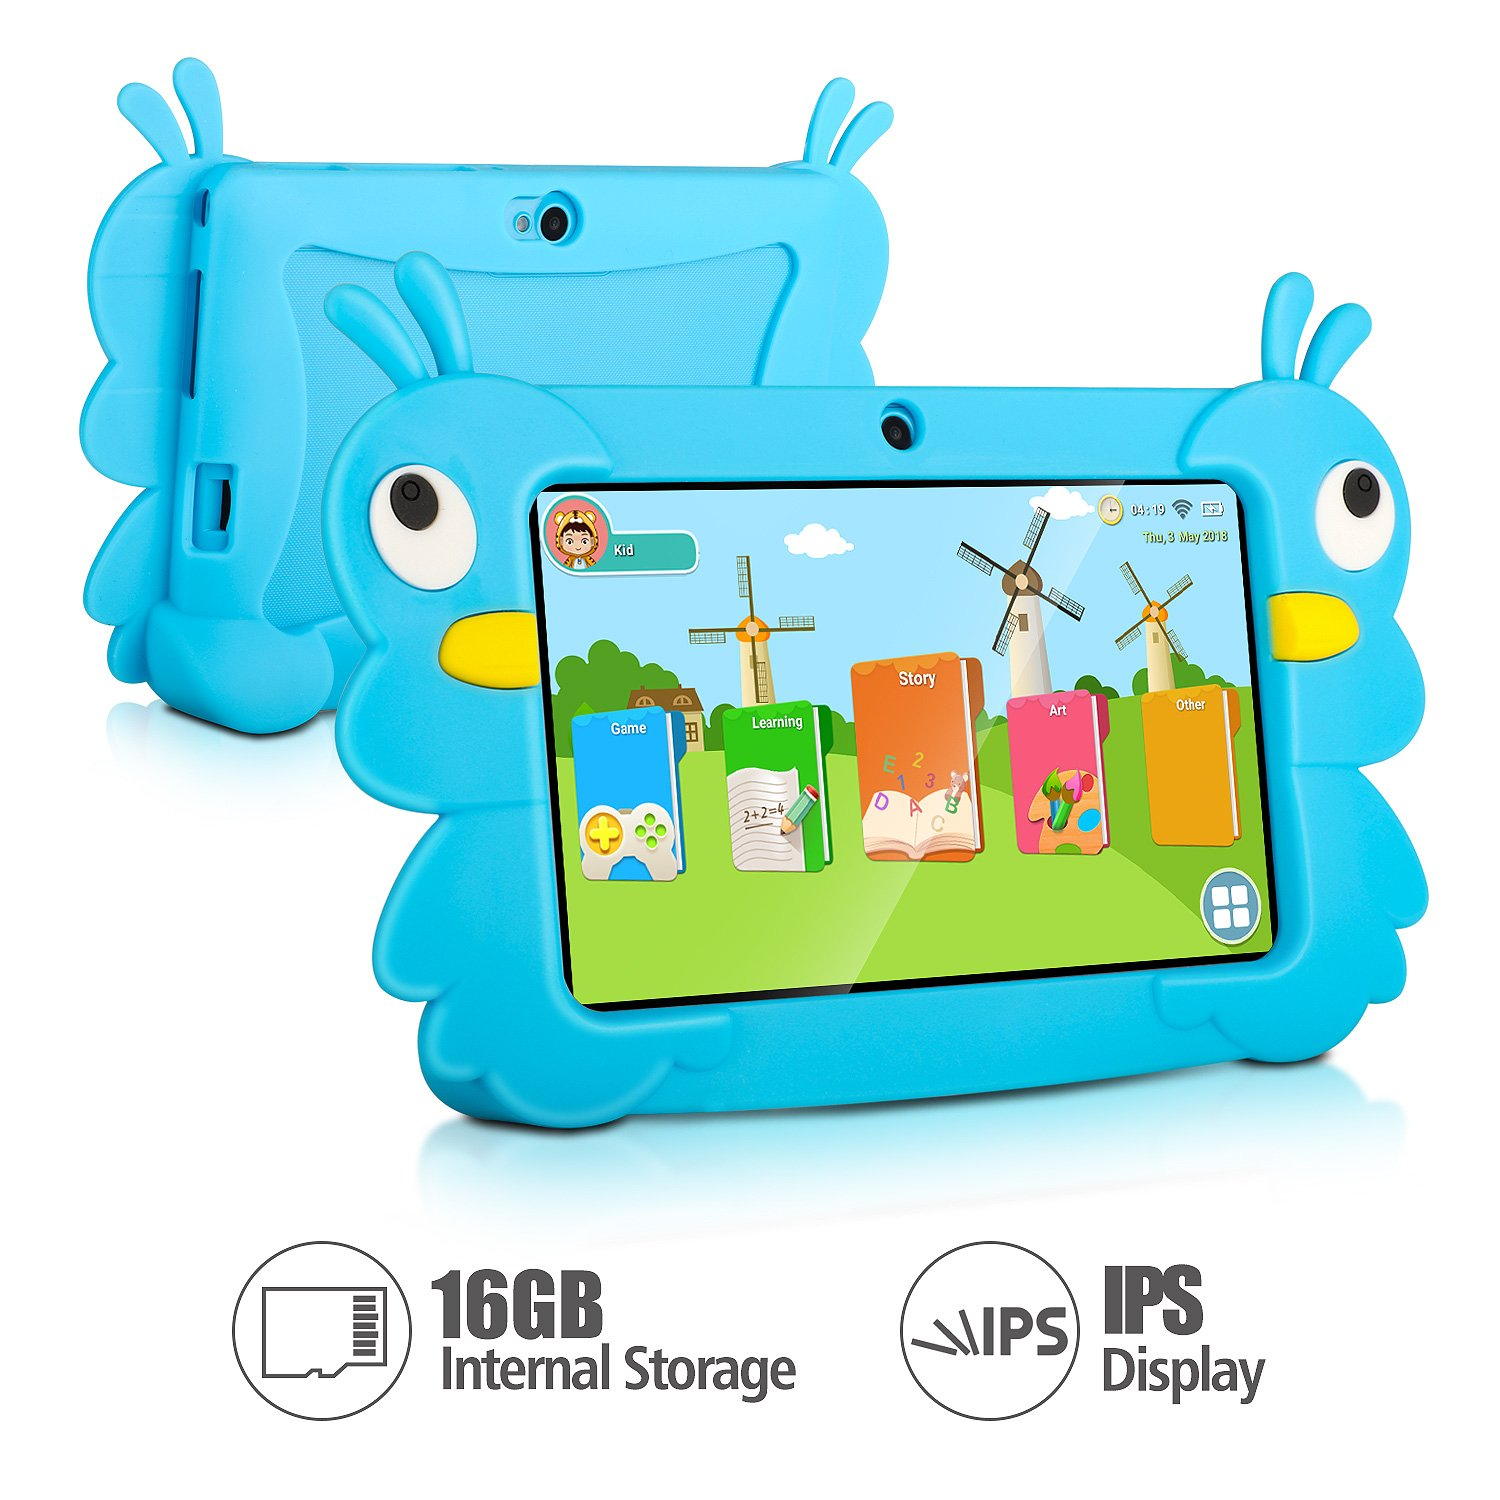 7 Inch Kids Tablet PC Quad Core 1024600 IPS Eye Protect Display 1GB RAM 16GB Storage Bluetooth WiFi Dual Camera with Kids Educational Software Parental Control (Blue)